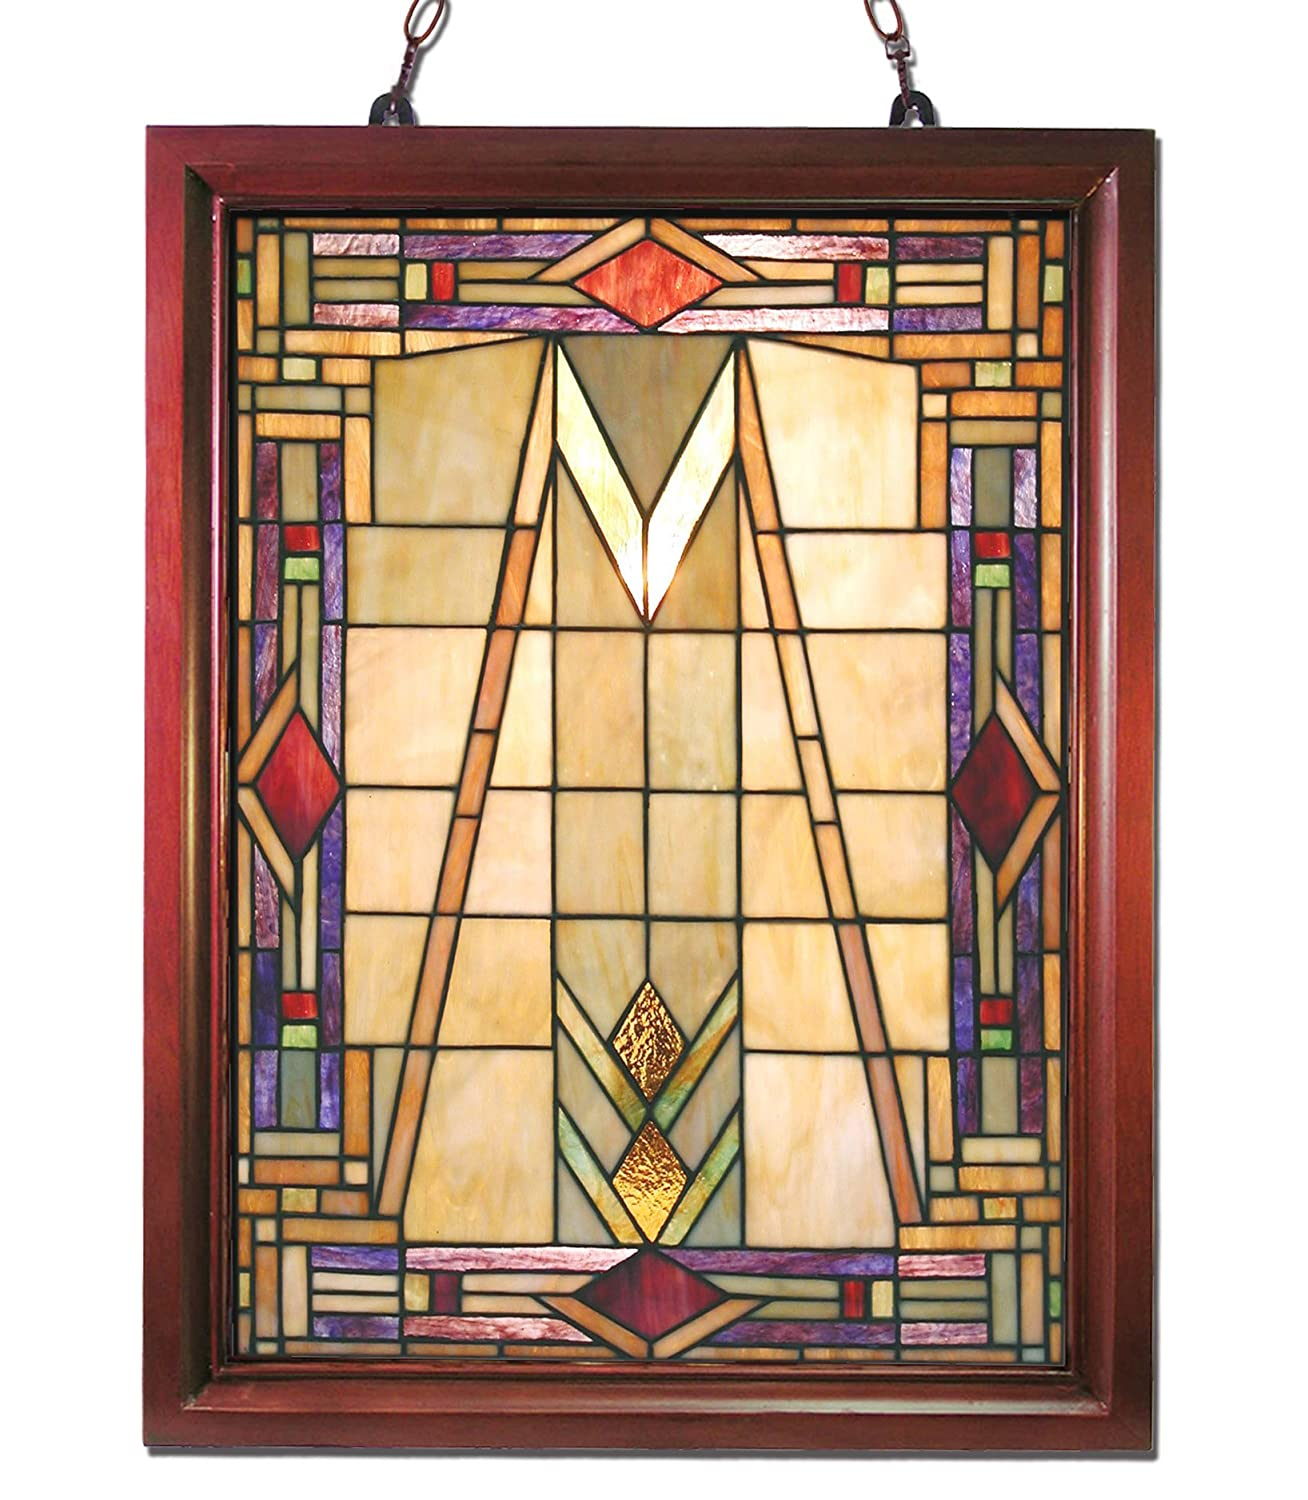 Amazon.com: Tiffany-style Mission Glass Window Panel: Home & Kitchen